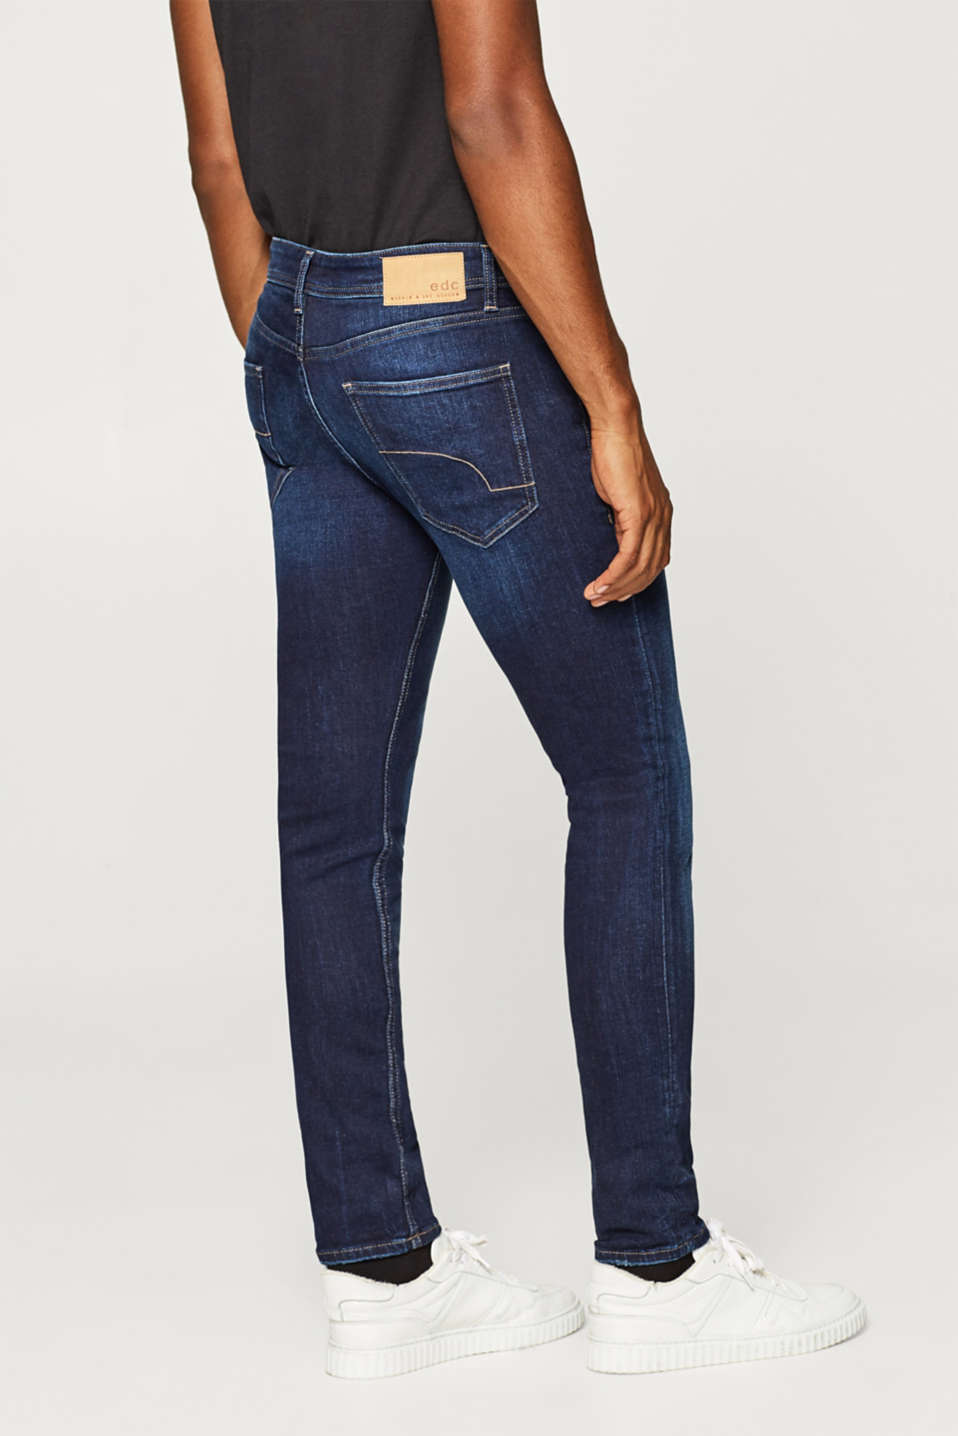 Stretch jeans in a light wash